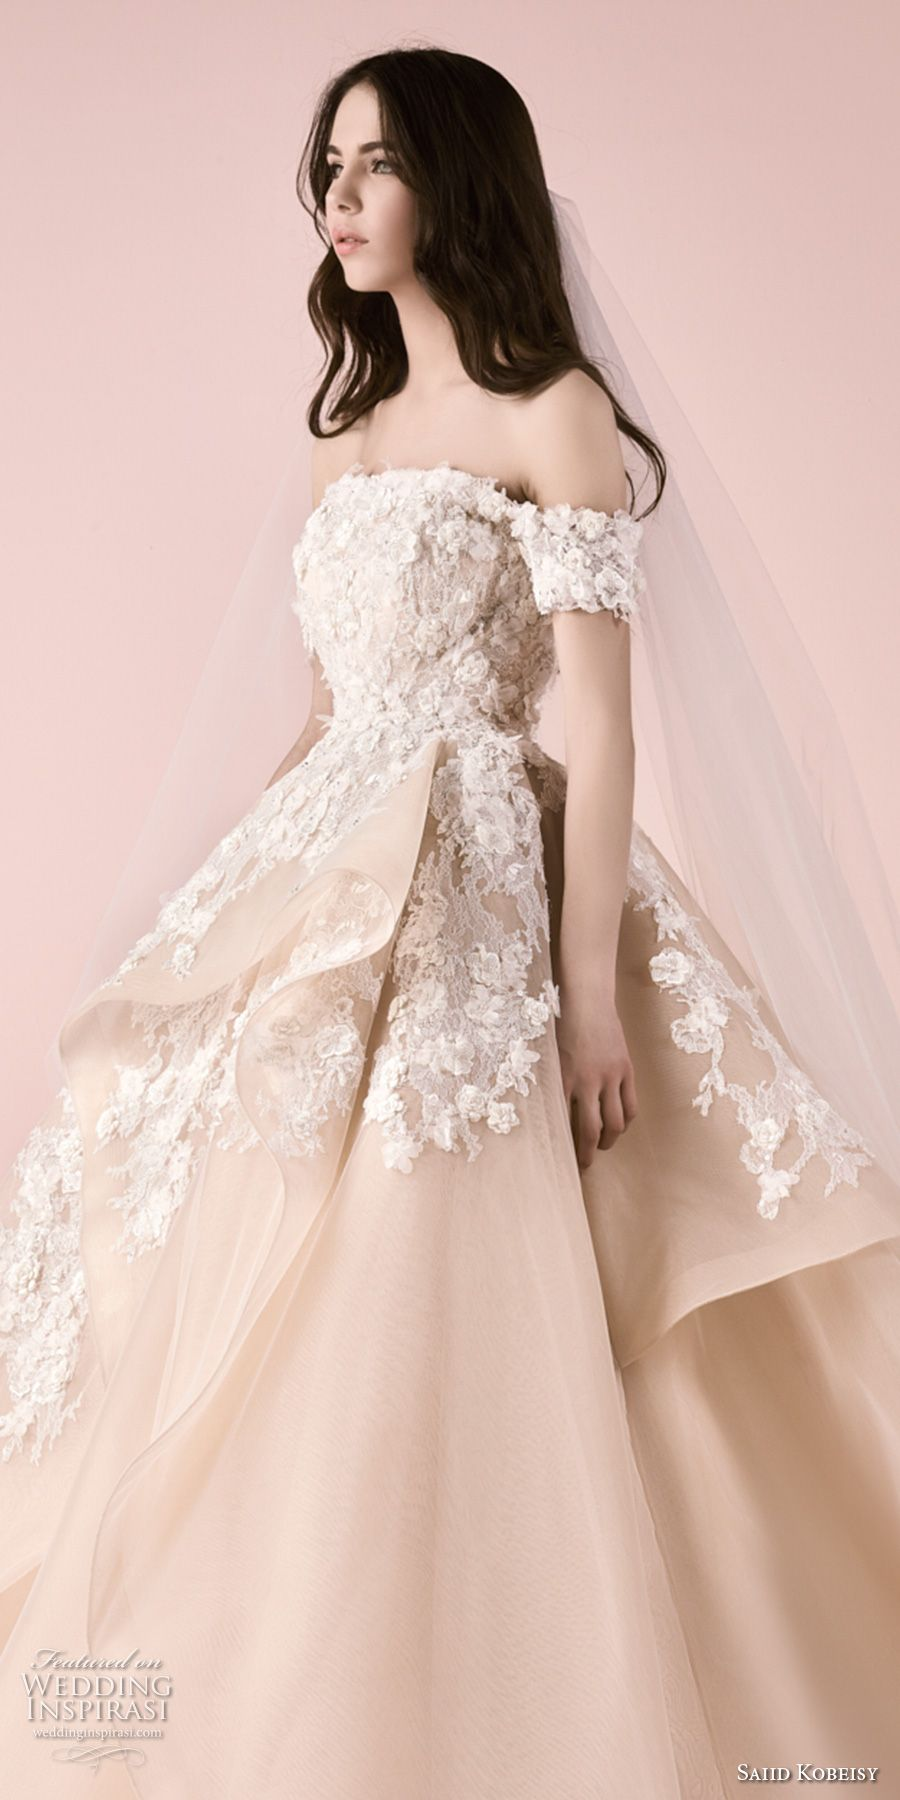 58c87d5119574 saiid kobeisy 2018 bridal off the shoulder straight across neckline heavily  embellished bodice layered skirt princess blush color ball gown wedding  dress ...